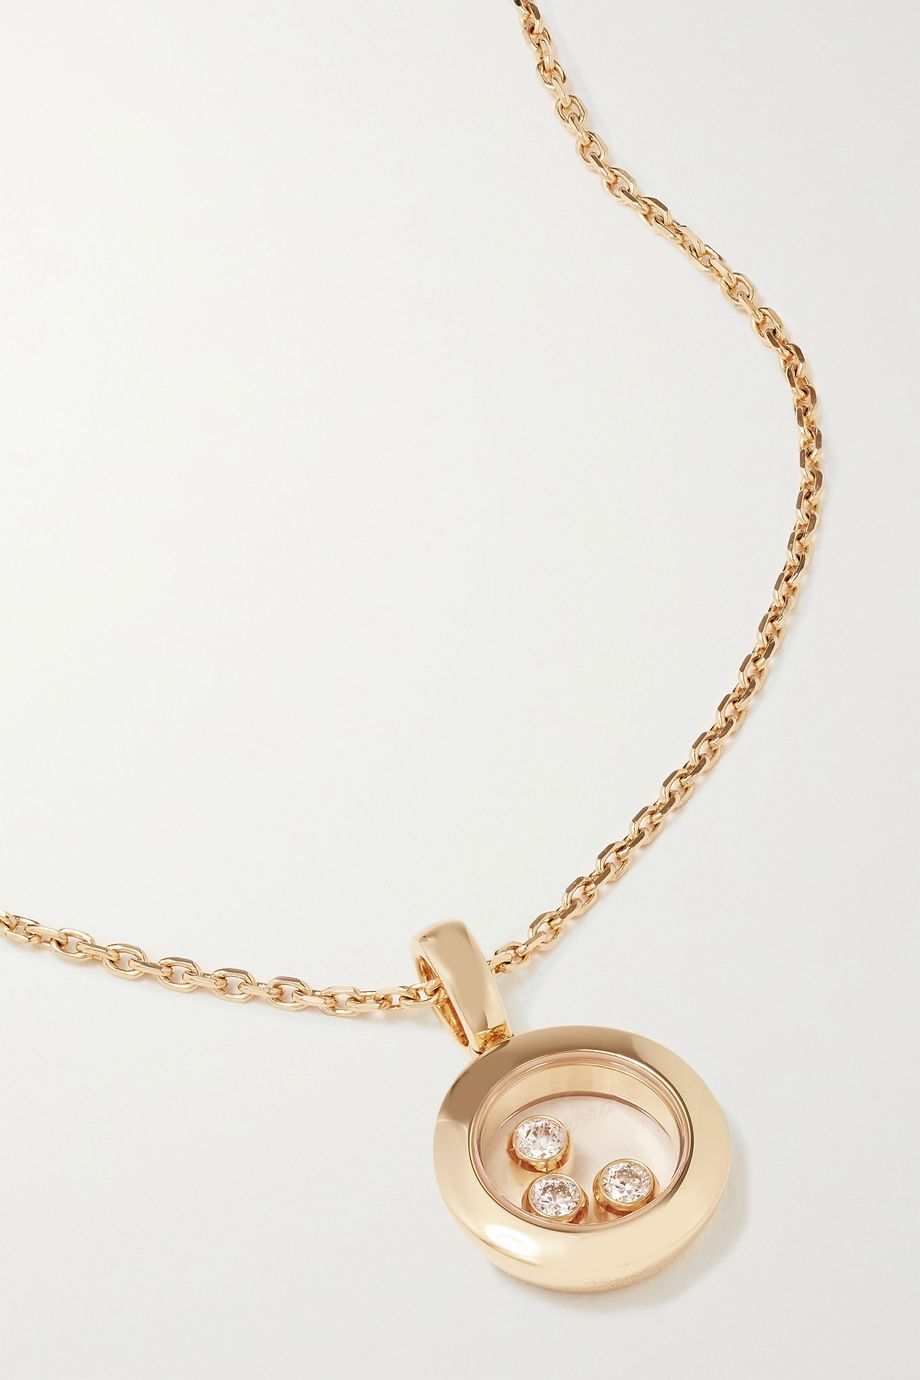 Chopard + NET SUSTAIN Happy Diamonds 18-karat gold diamond necklace